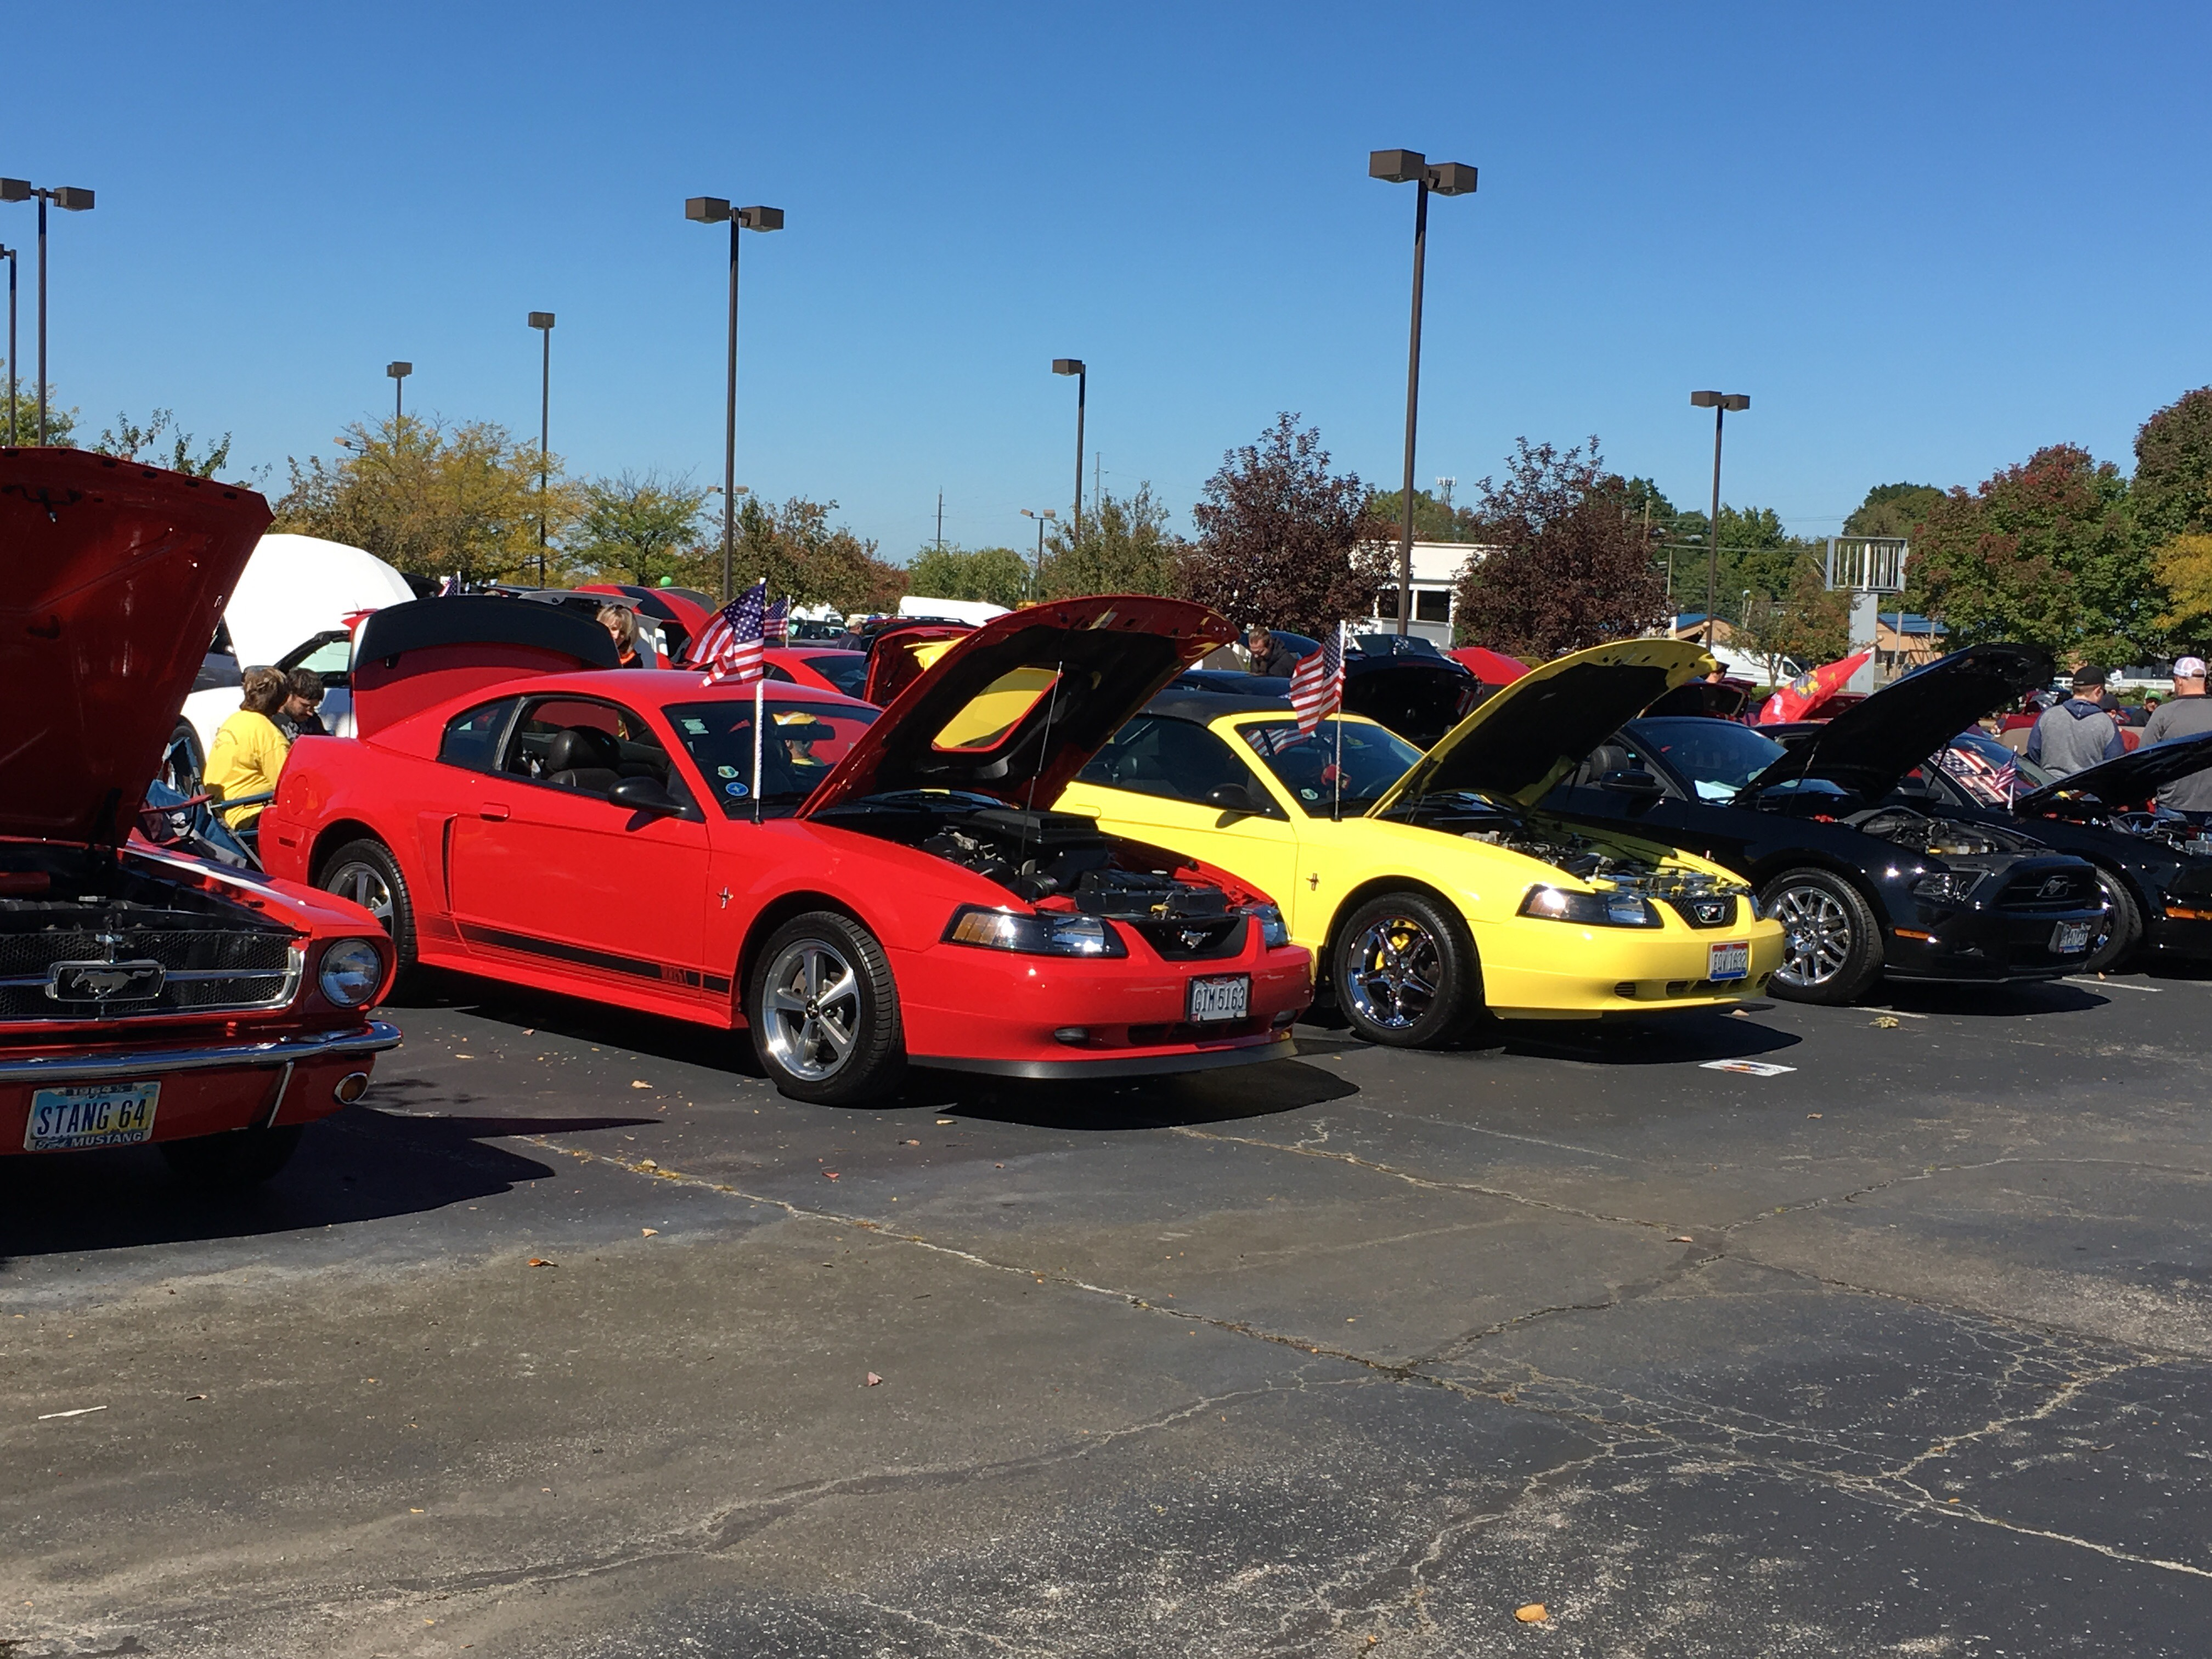 Bill Collins Ford Mustang Show Today In Louisville Ky - Bill collins ford car show